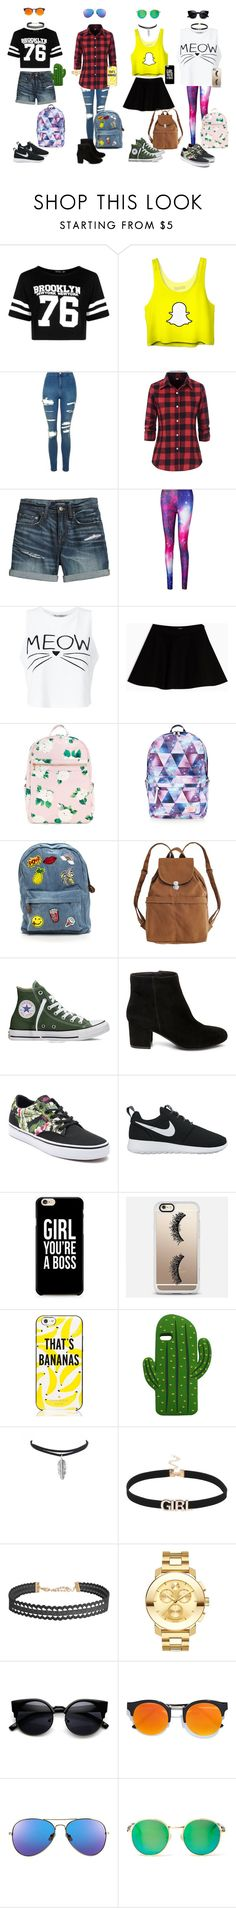 """""""Back 2 school BFF'S!"""" by jedezepo on Polyvore featuring Boohoo, Topshop, Canvas by Lands' End, Miss Selfridge, Max&Co., Accessorize, BAGGU, Steve Madden, Vans and NIKE"""